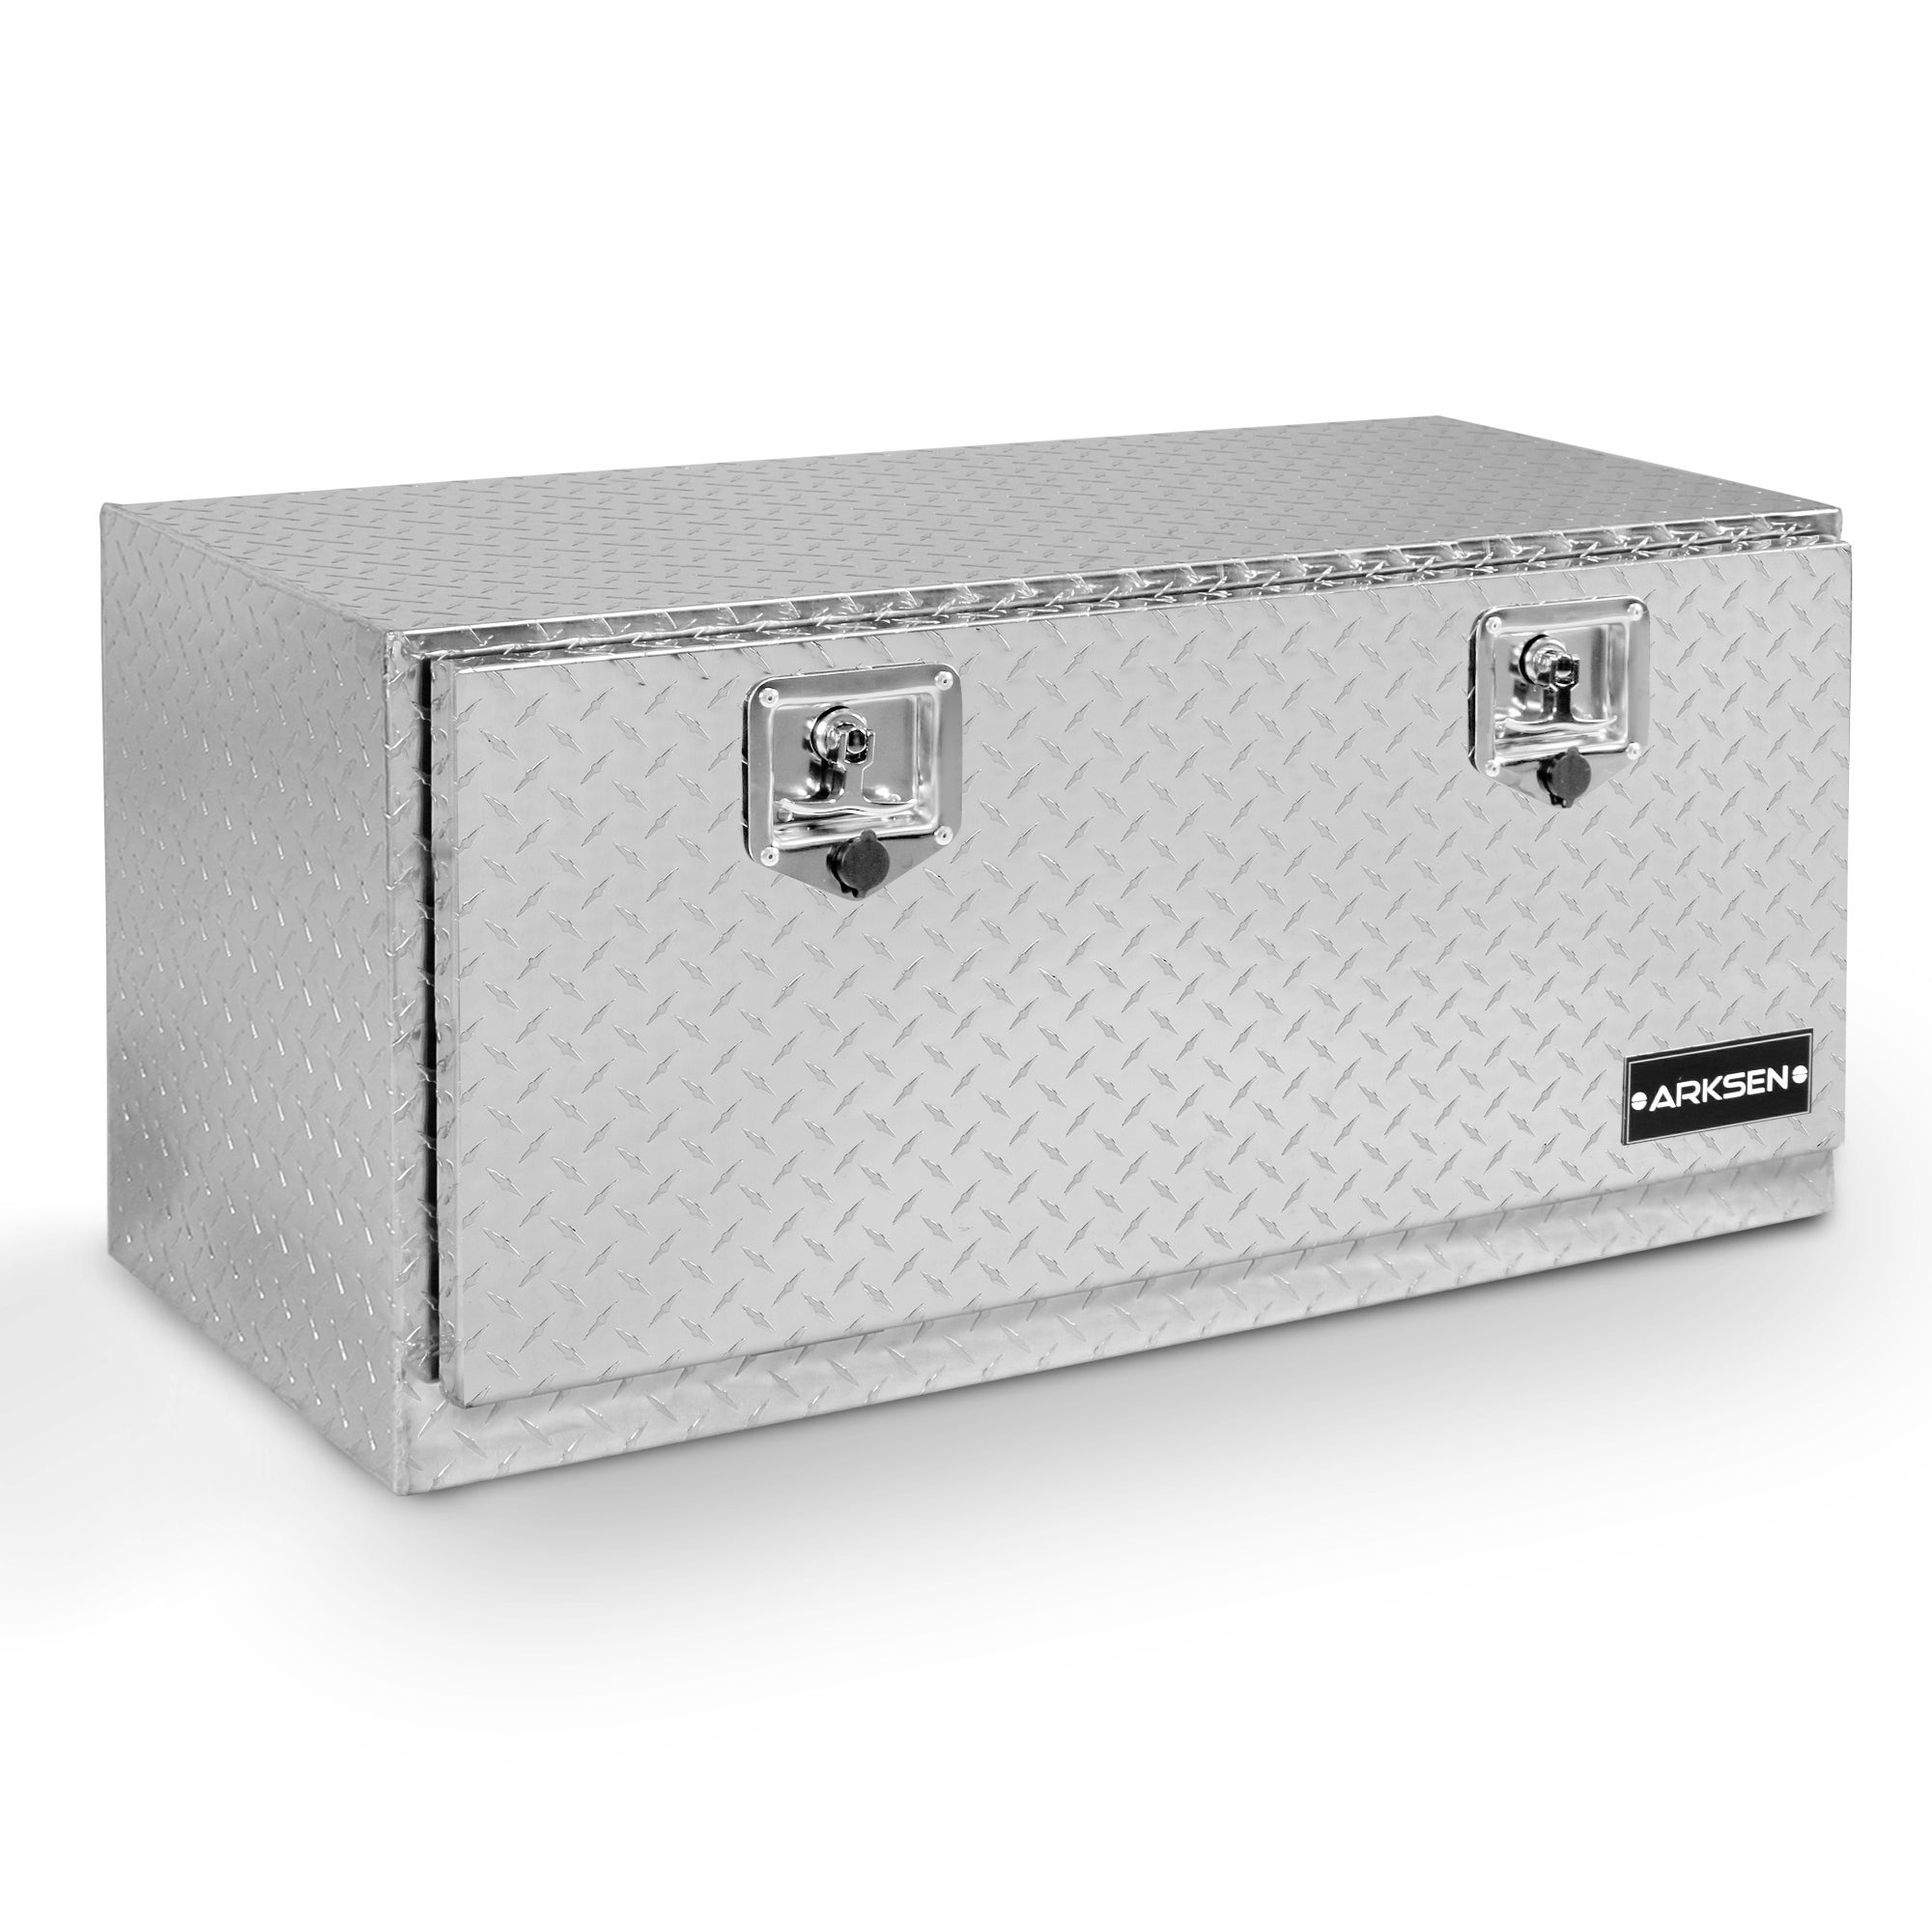 36 Aluminum Tool Box For Truck Underbody Tool Box Trailer RV Tool Storage w//Lock